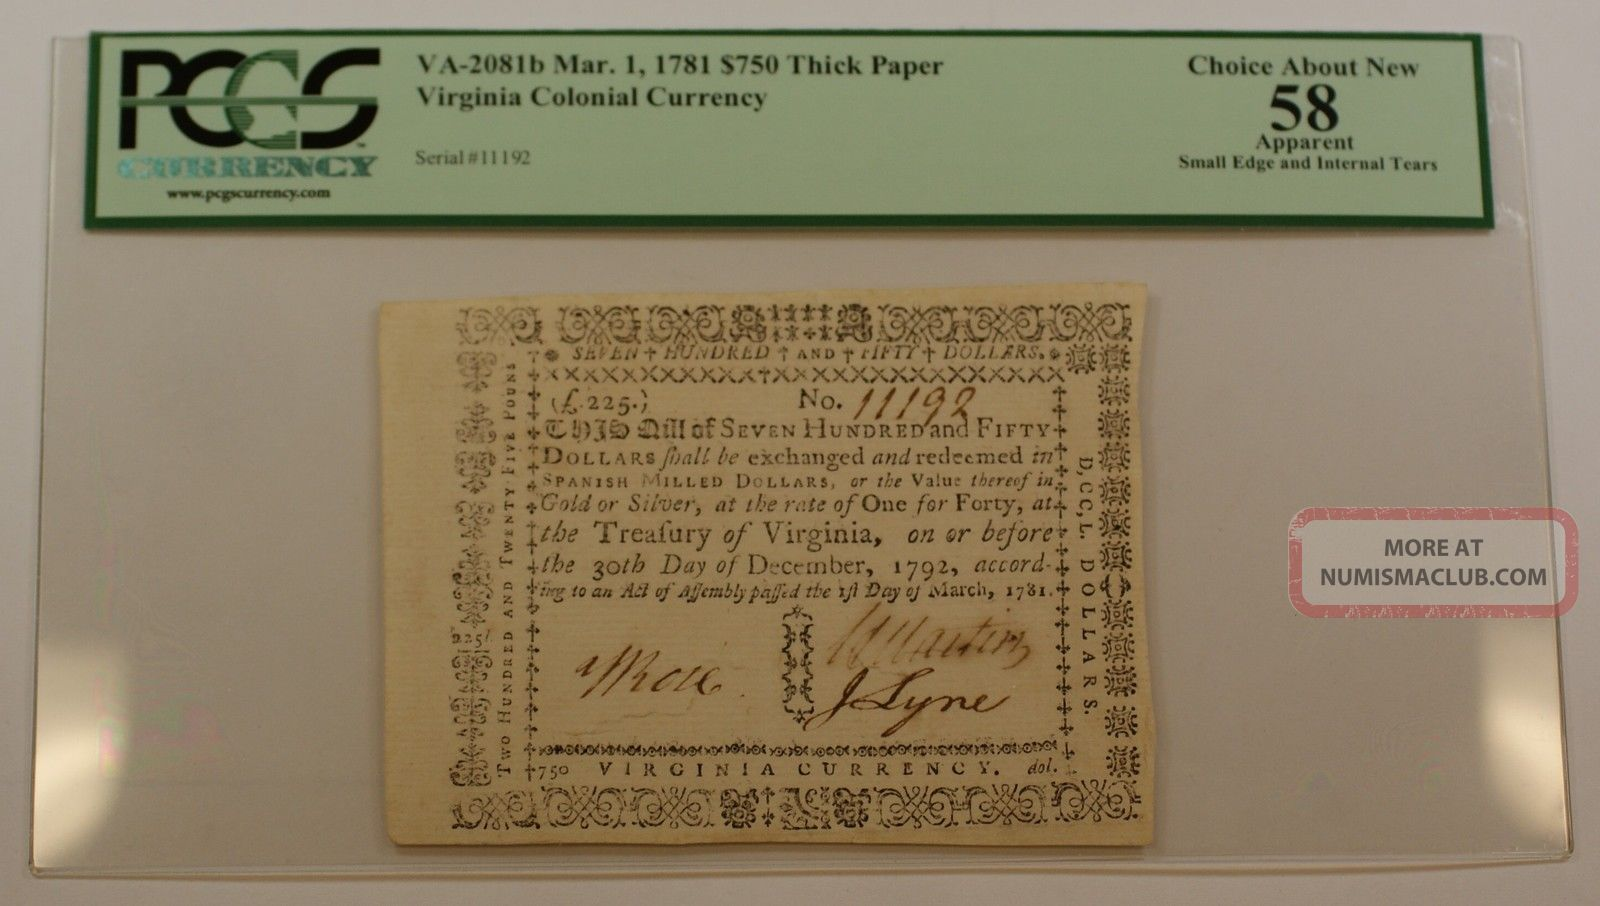 1781 $750 Thick Paper Colonial Note Pcgs Choice About 58 Apparent Va - 2081b Paper Money: US photo